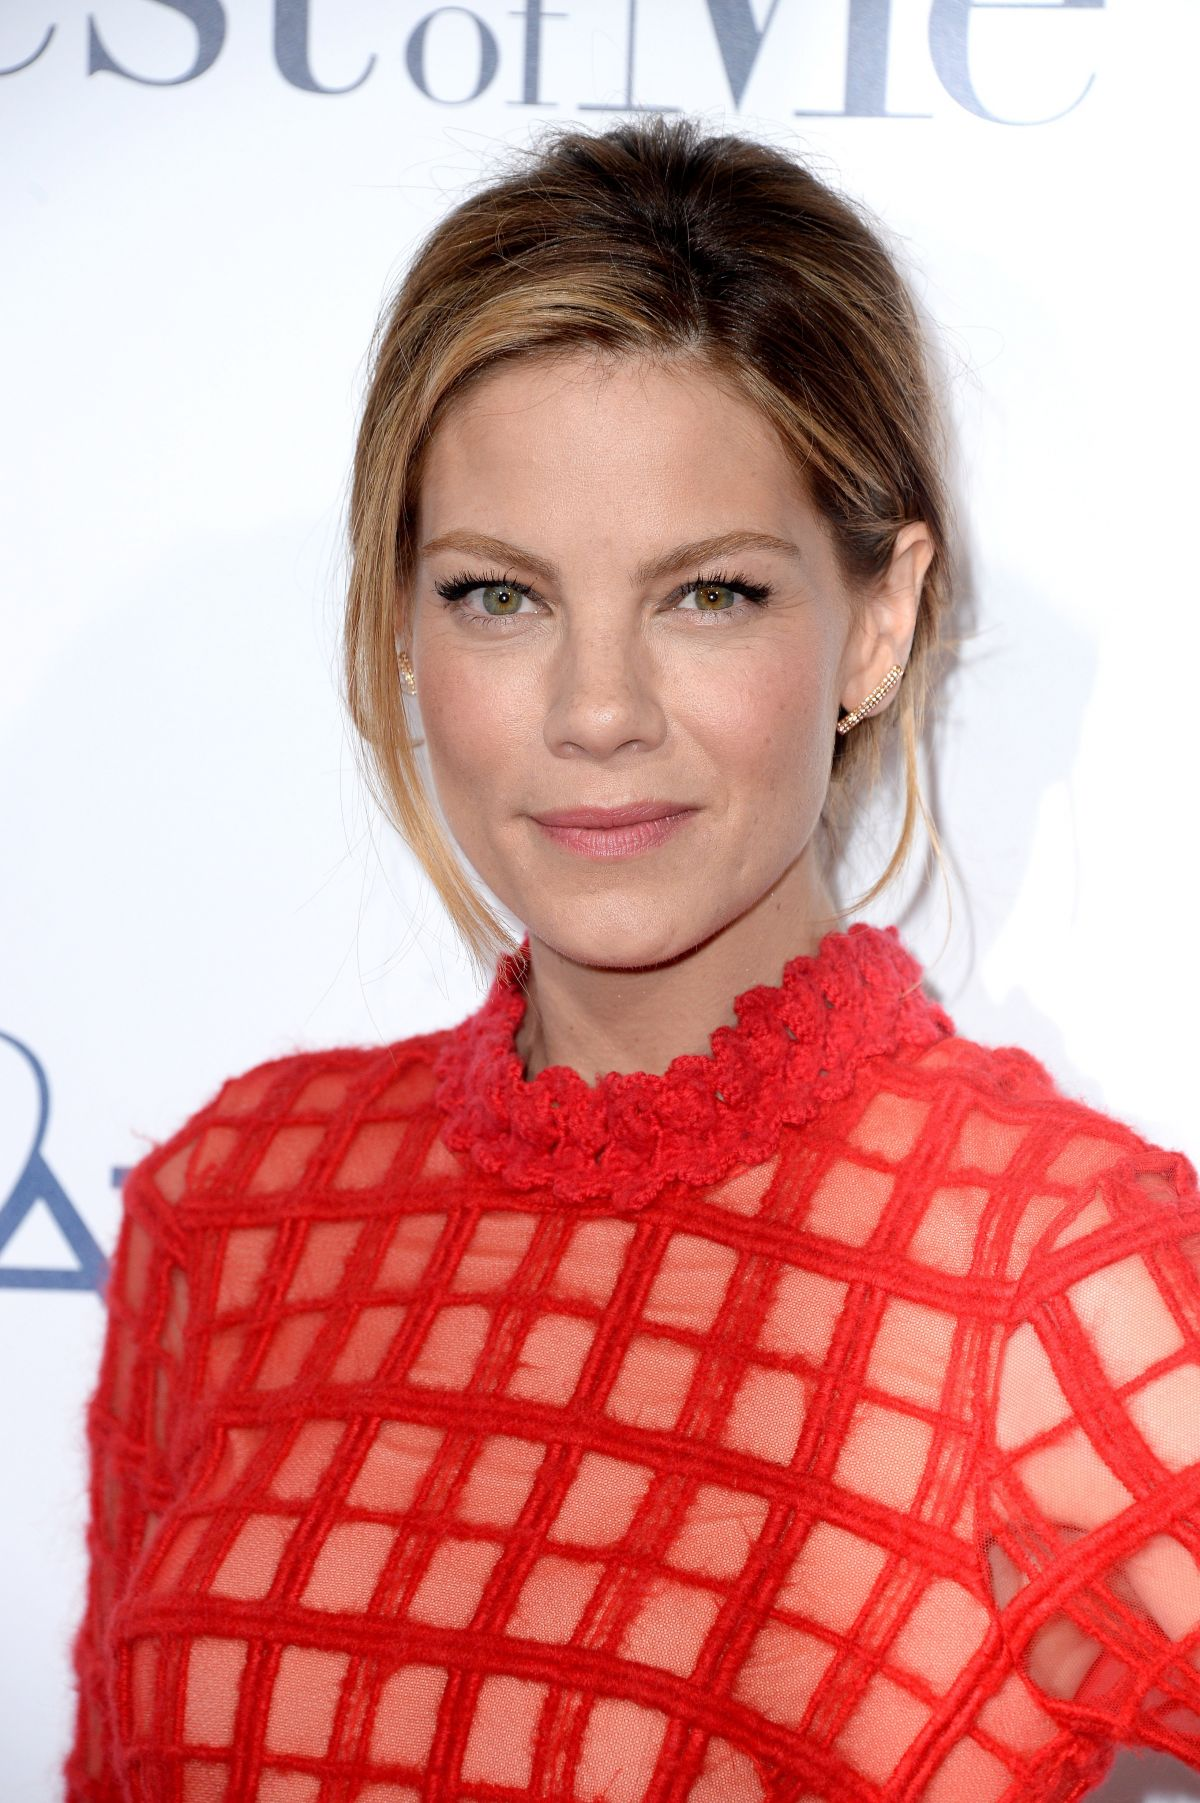 MICHELLE MONAGHAN at The Best of Me Premiere in Los Angeles